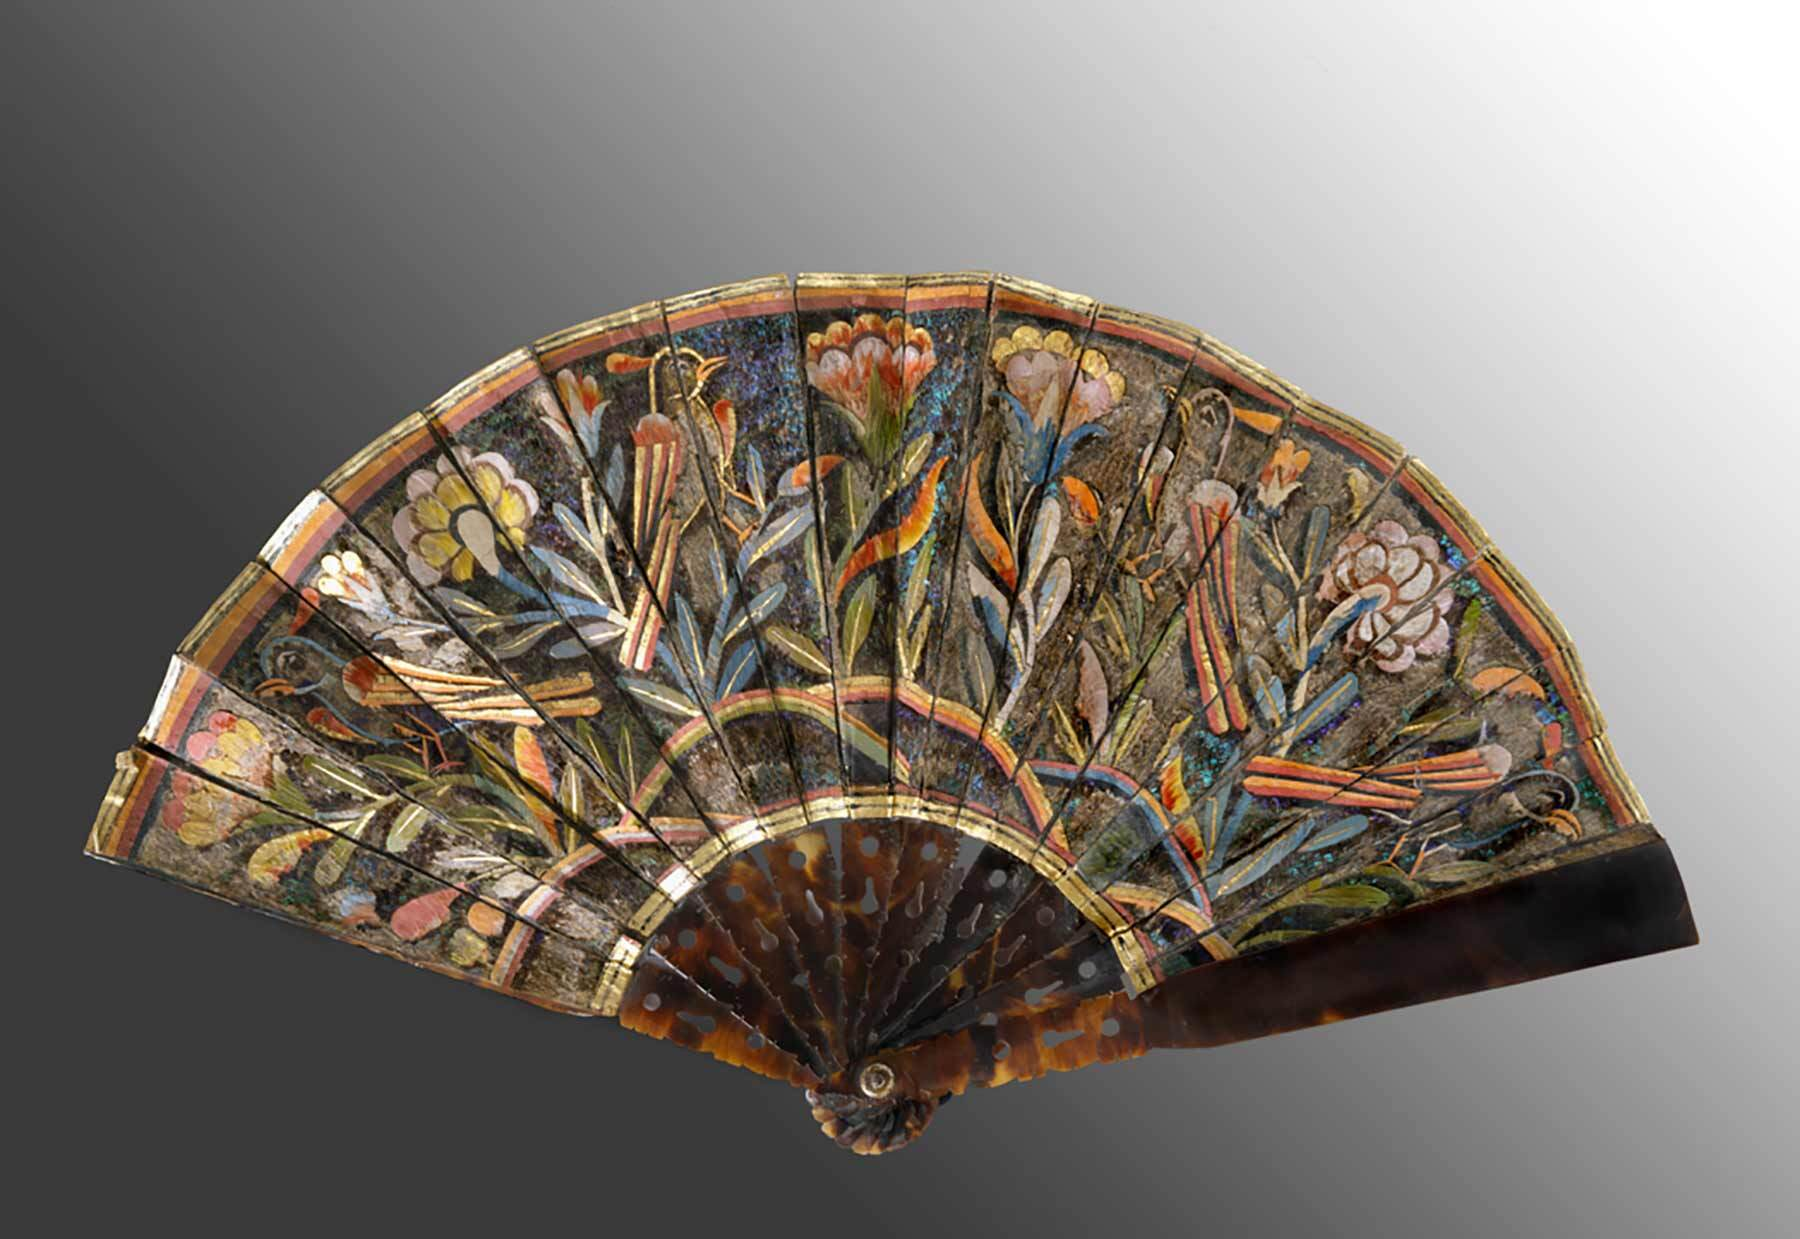 A folding fan comprised of pierced hawksbill tortoise shell, painted paper and feathers, it was created during the first century of the Spanish Colonial Era